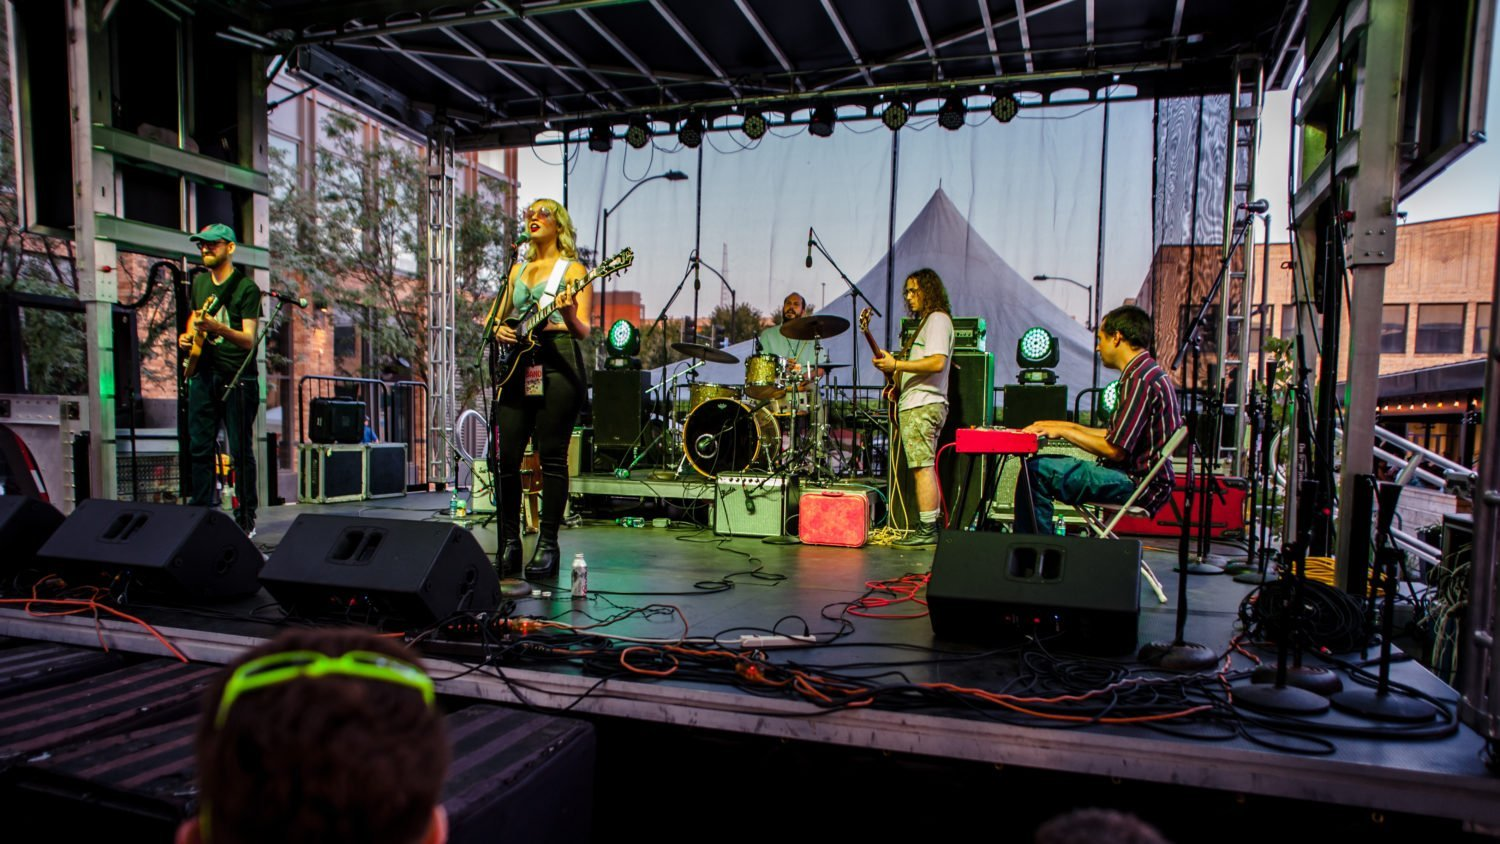 Elizabeth Moen performing at 80/35 Music Festival 2018 in Des Moines, Iowa